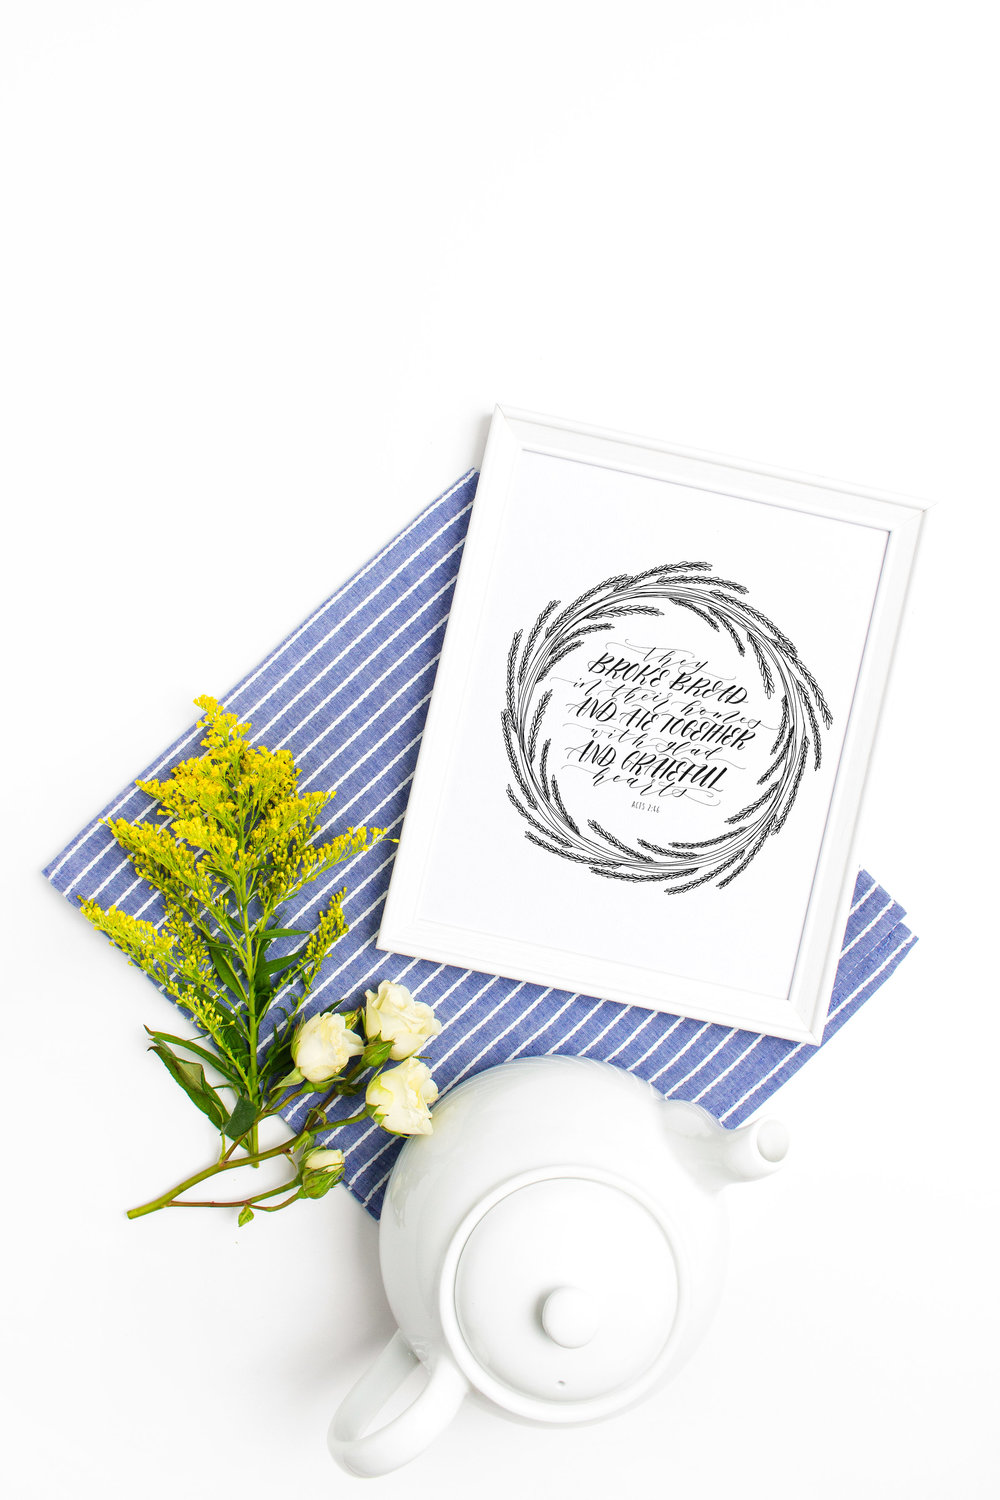 Copy of Printable Design (Available in store)